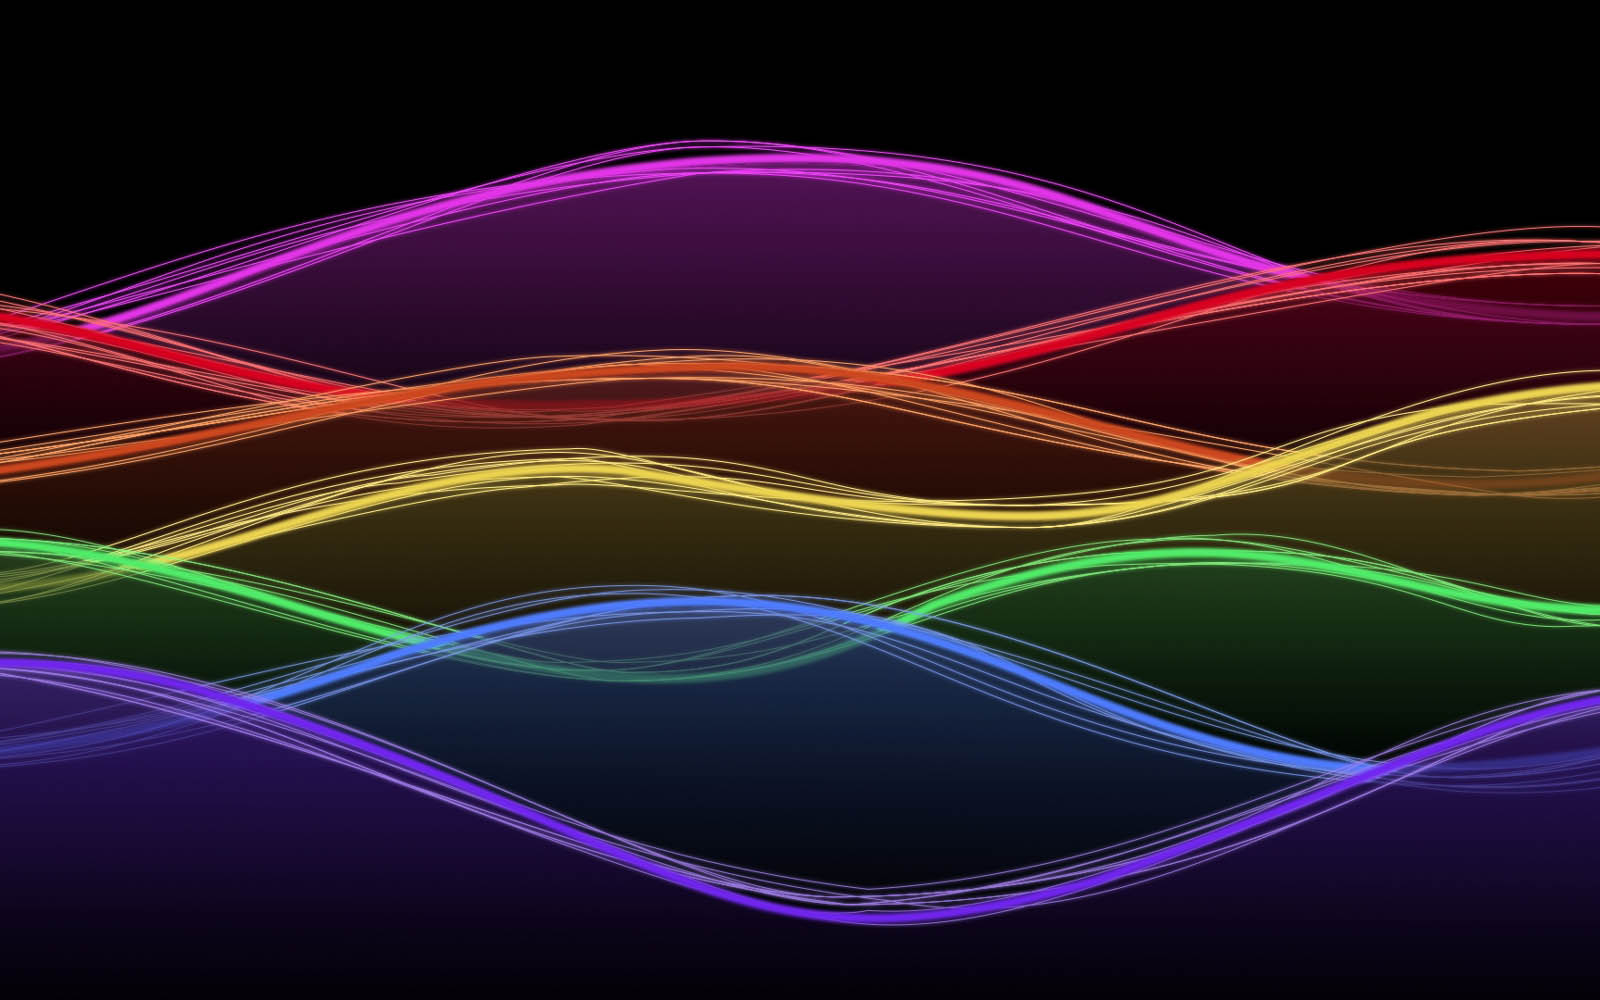 Neon Art Wallpapers Backgrounds PhotosImages and Pictures for 1600x1000